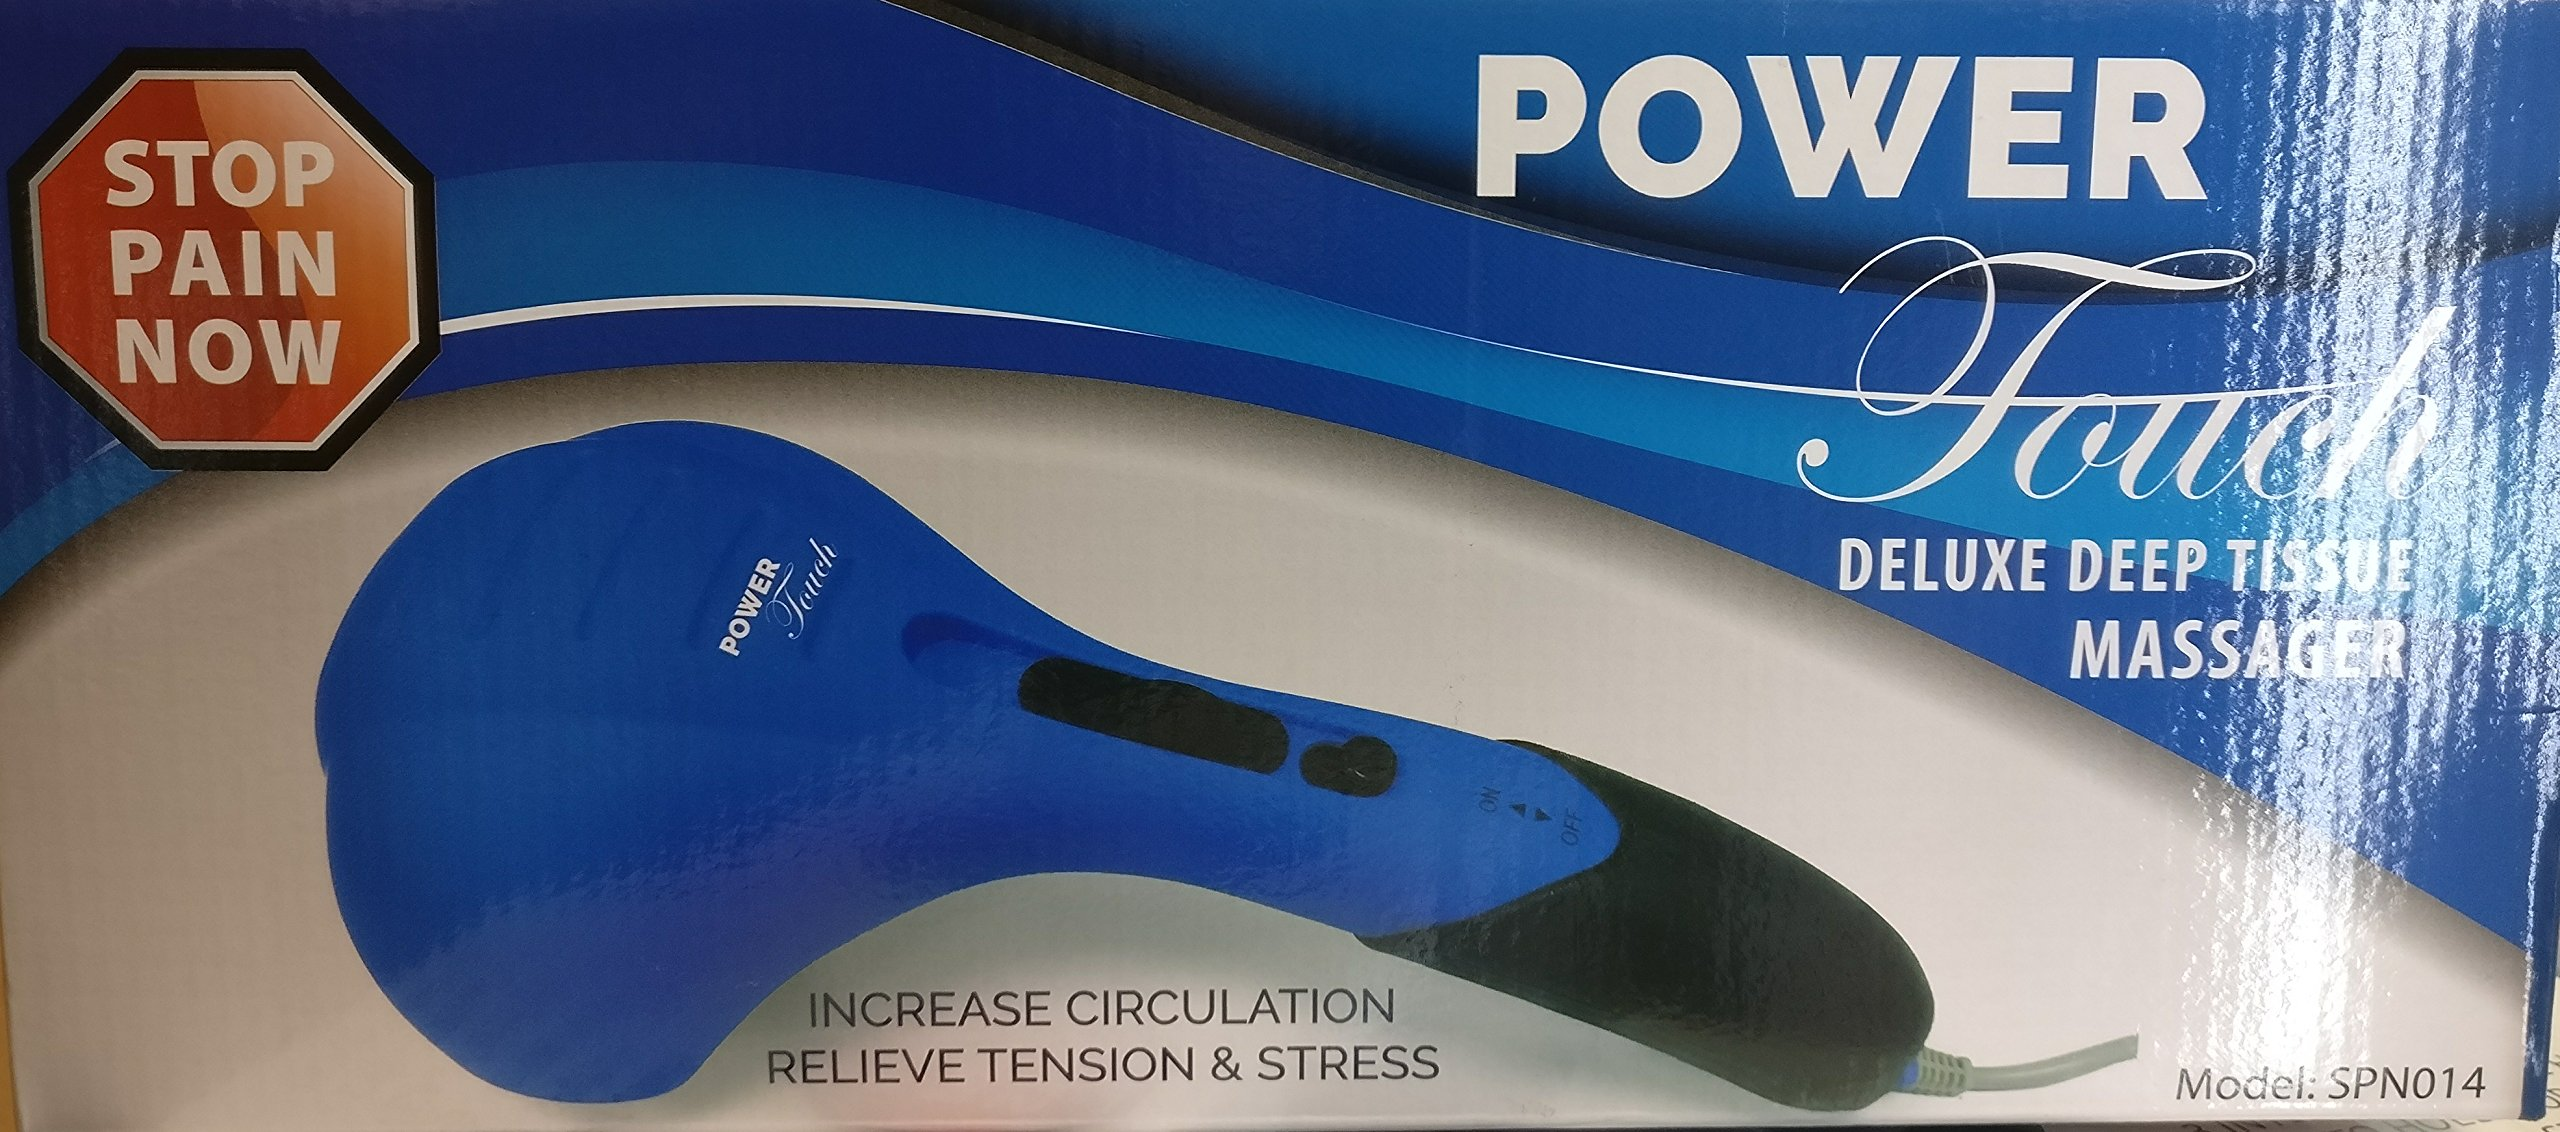 Power Touch Deluxe Deep Tissue Massager Blue